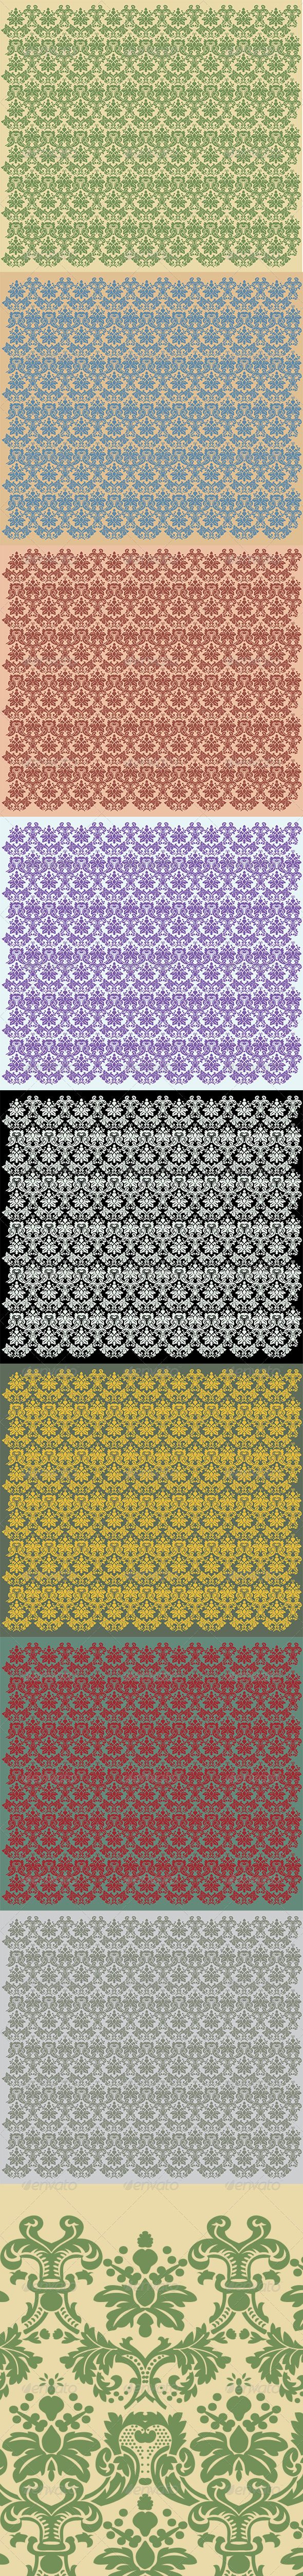 GraphicRiver Pattern 5607169